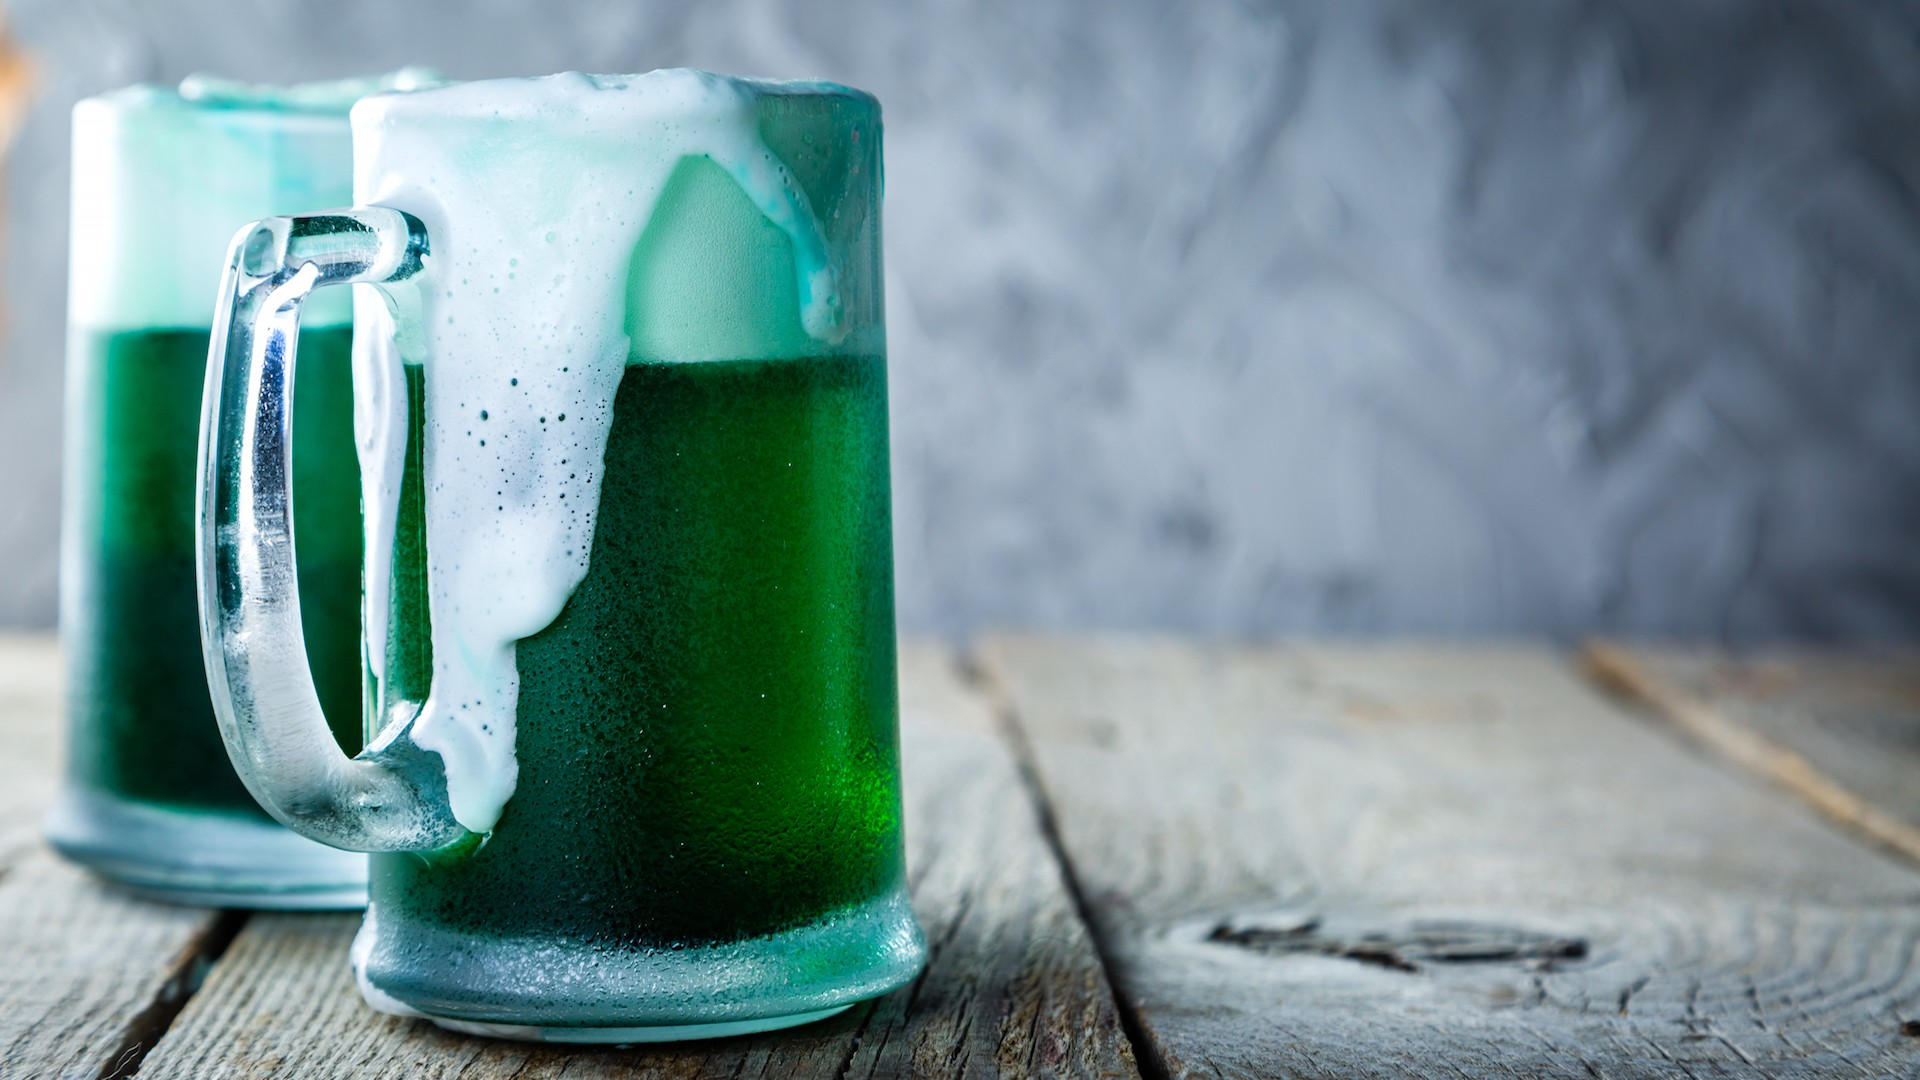 How to Make Green Beer 4 Other Festive Drinks for St Patricks 1920x1080